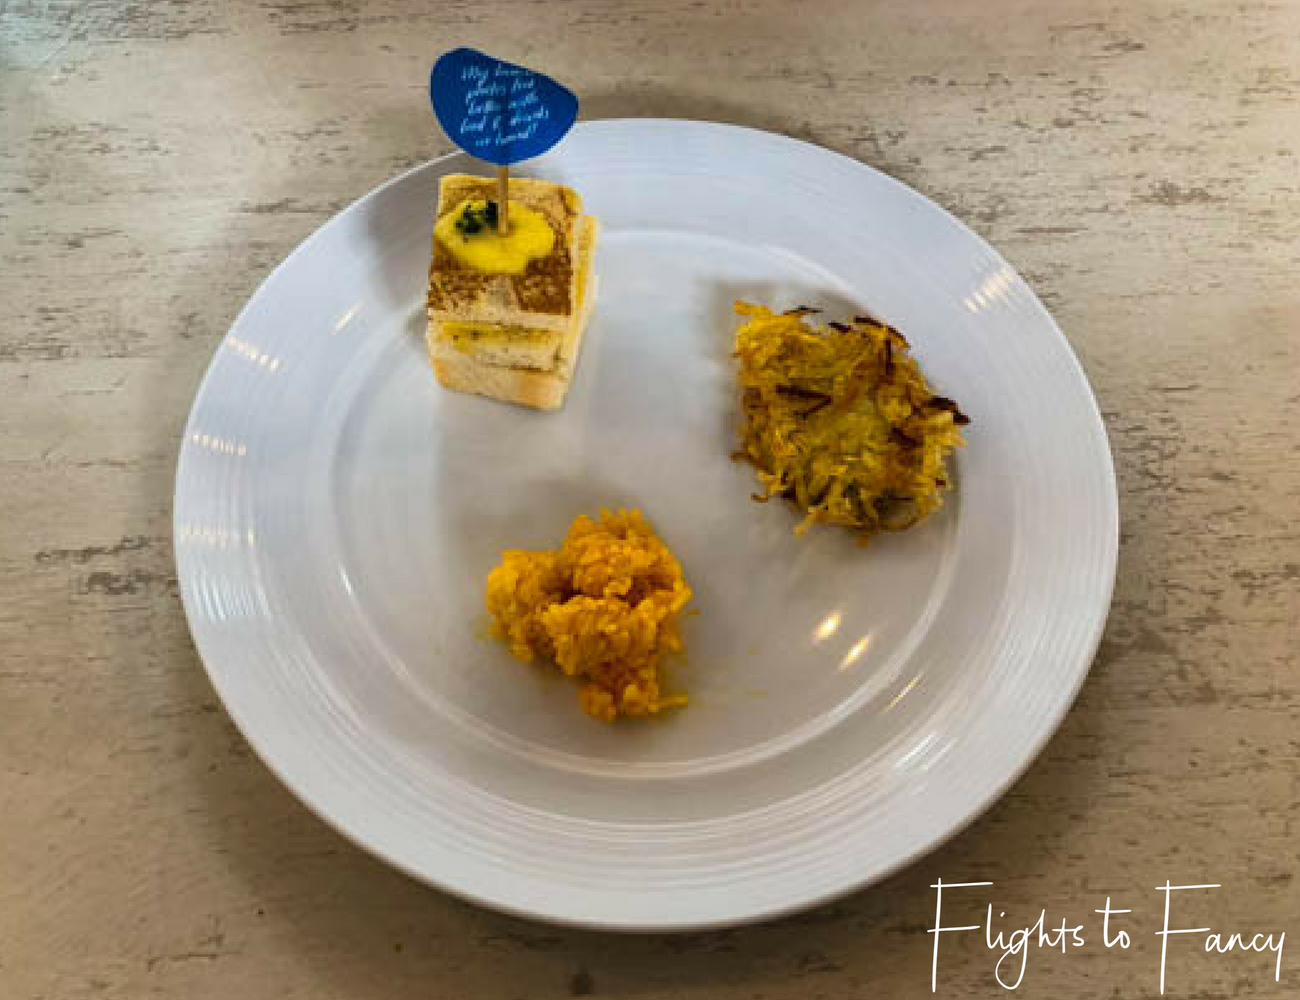 Flights To Fancy at Cha Cha's Boracay - Breakfast Miniatures